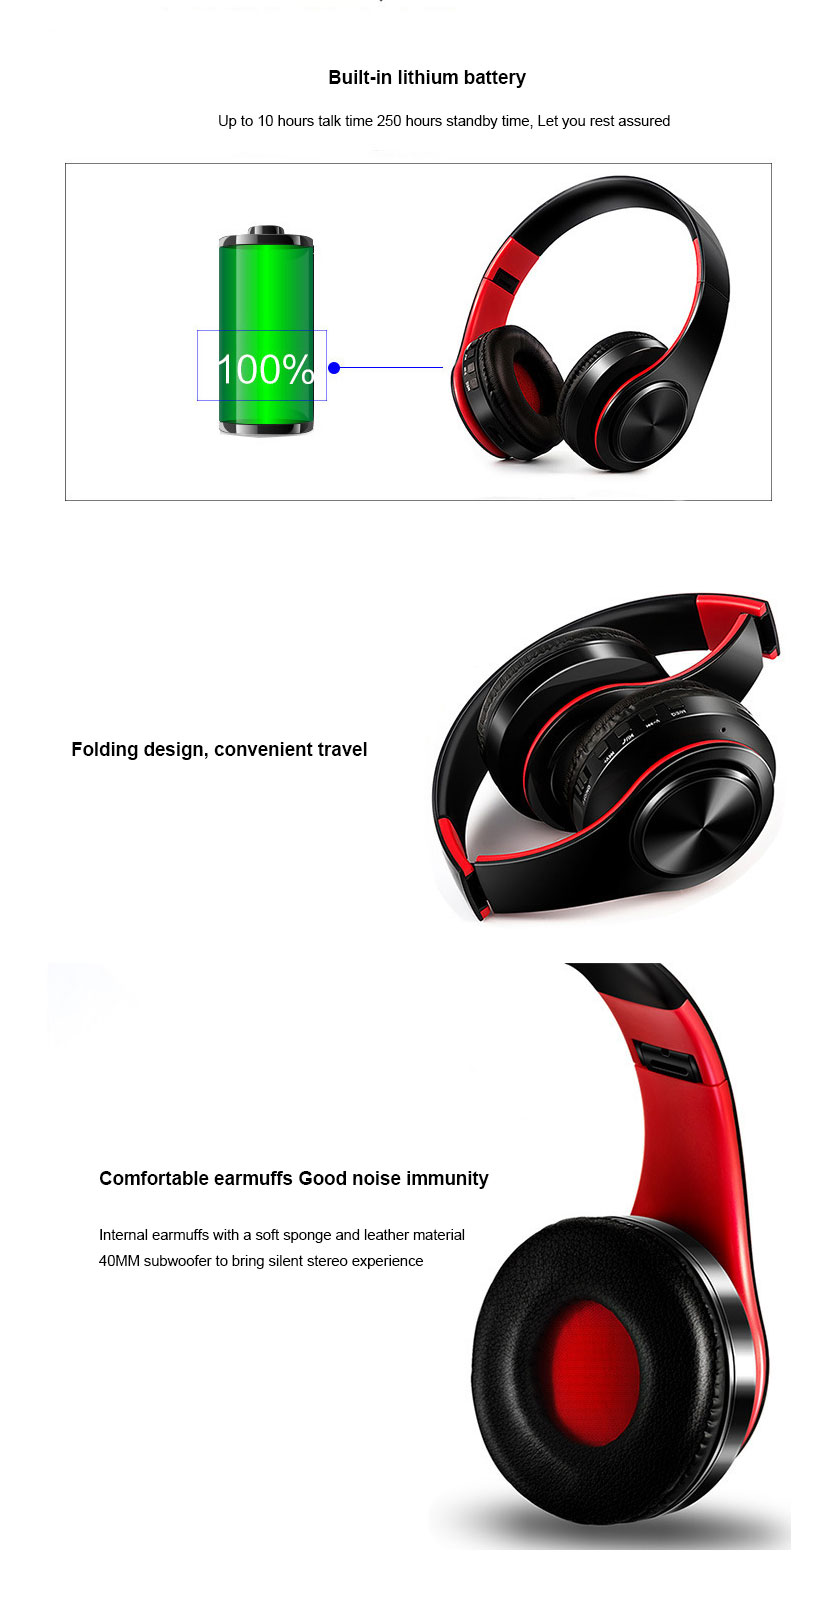 Wireless Earphones Stereo Wireless Bluetooth Headset Portable Cordless Headphone support FM Radio TF Card with MIC for Phone (3)